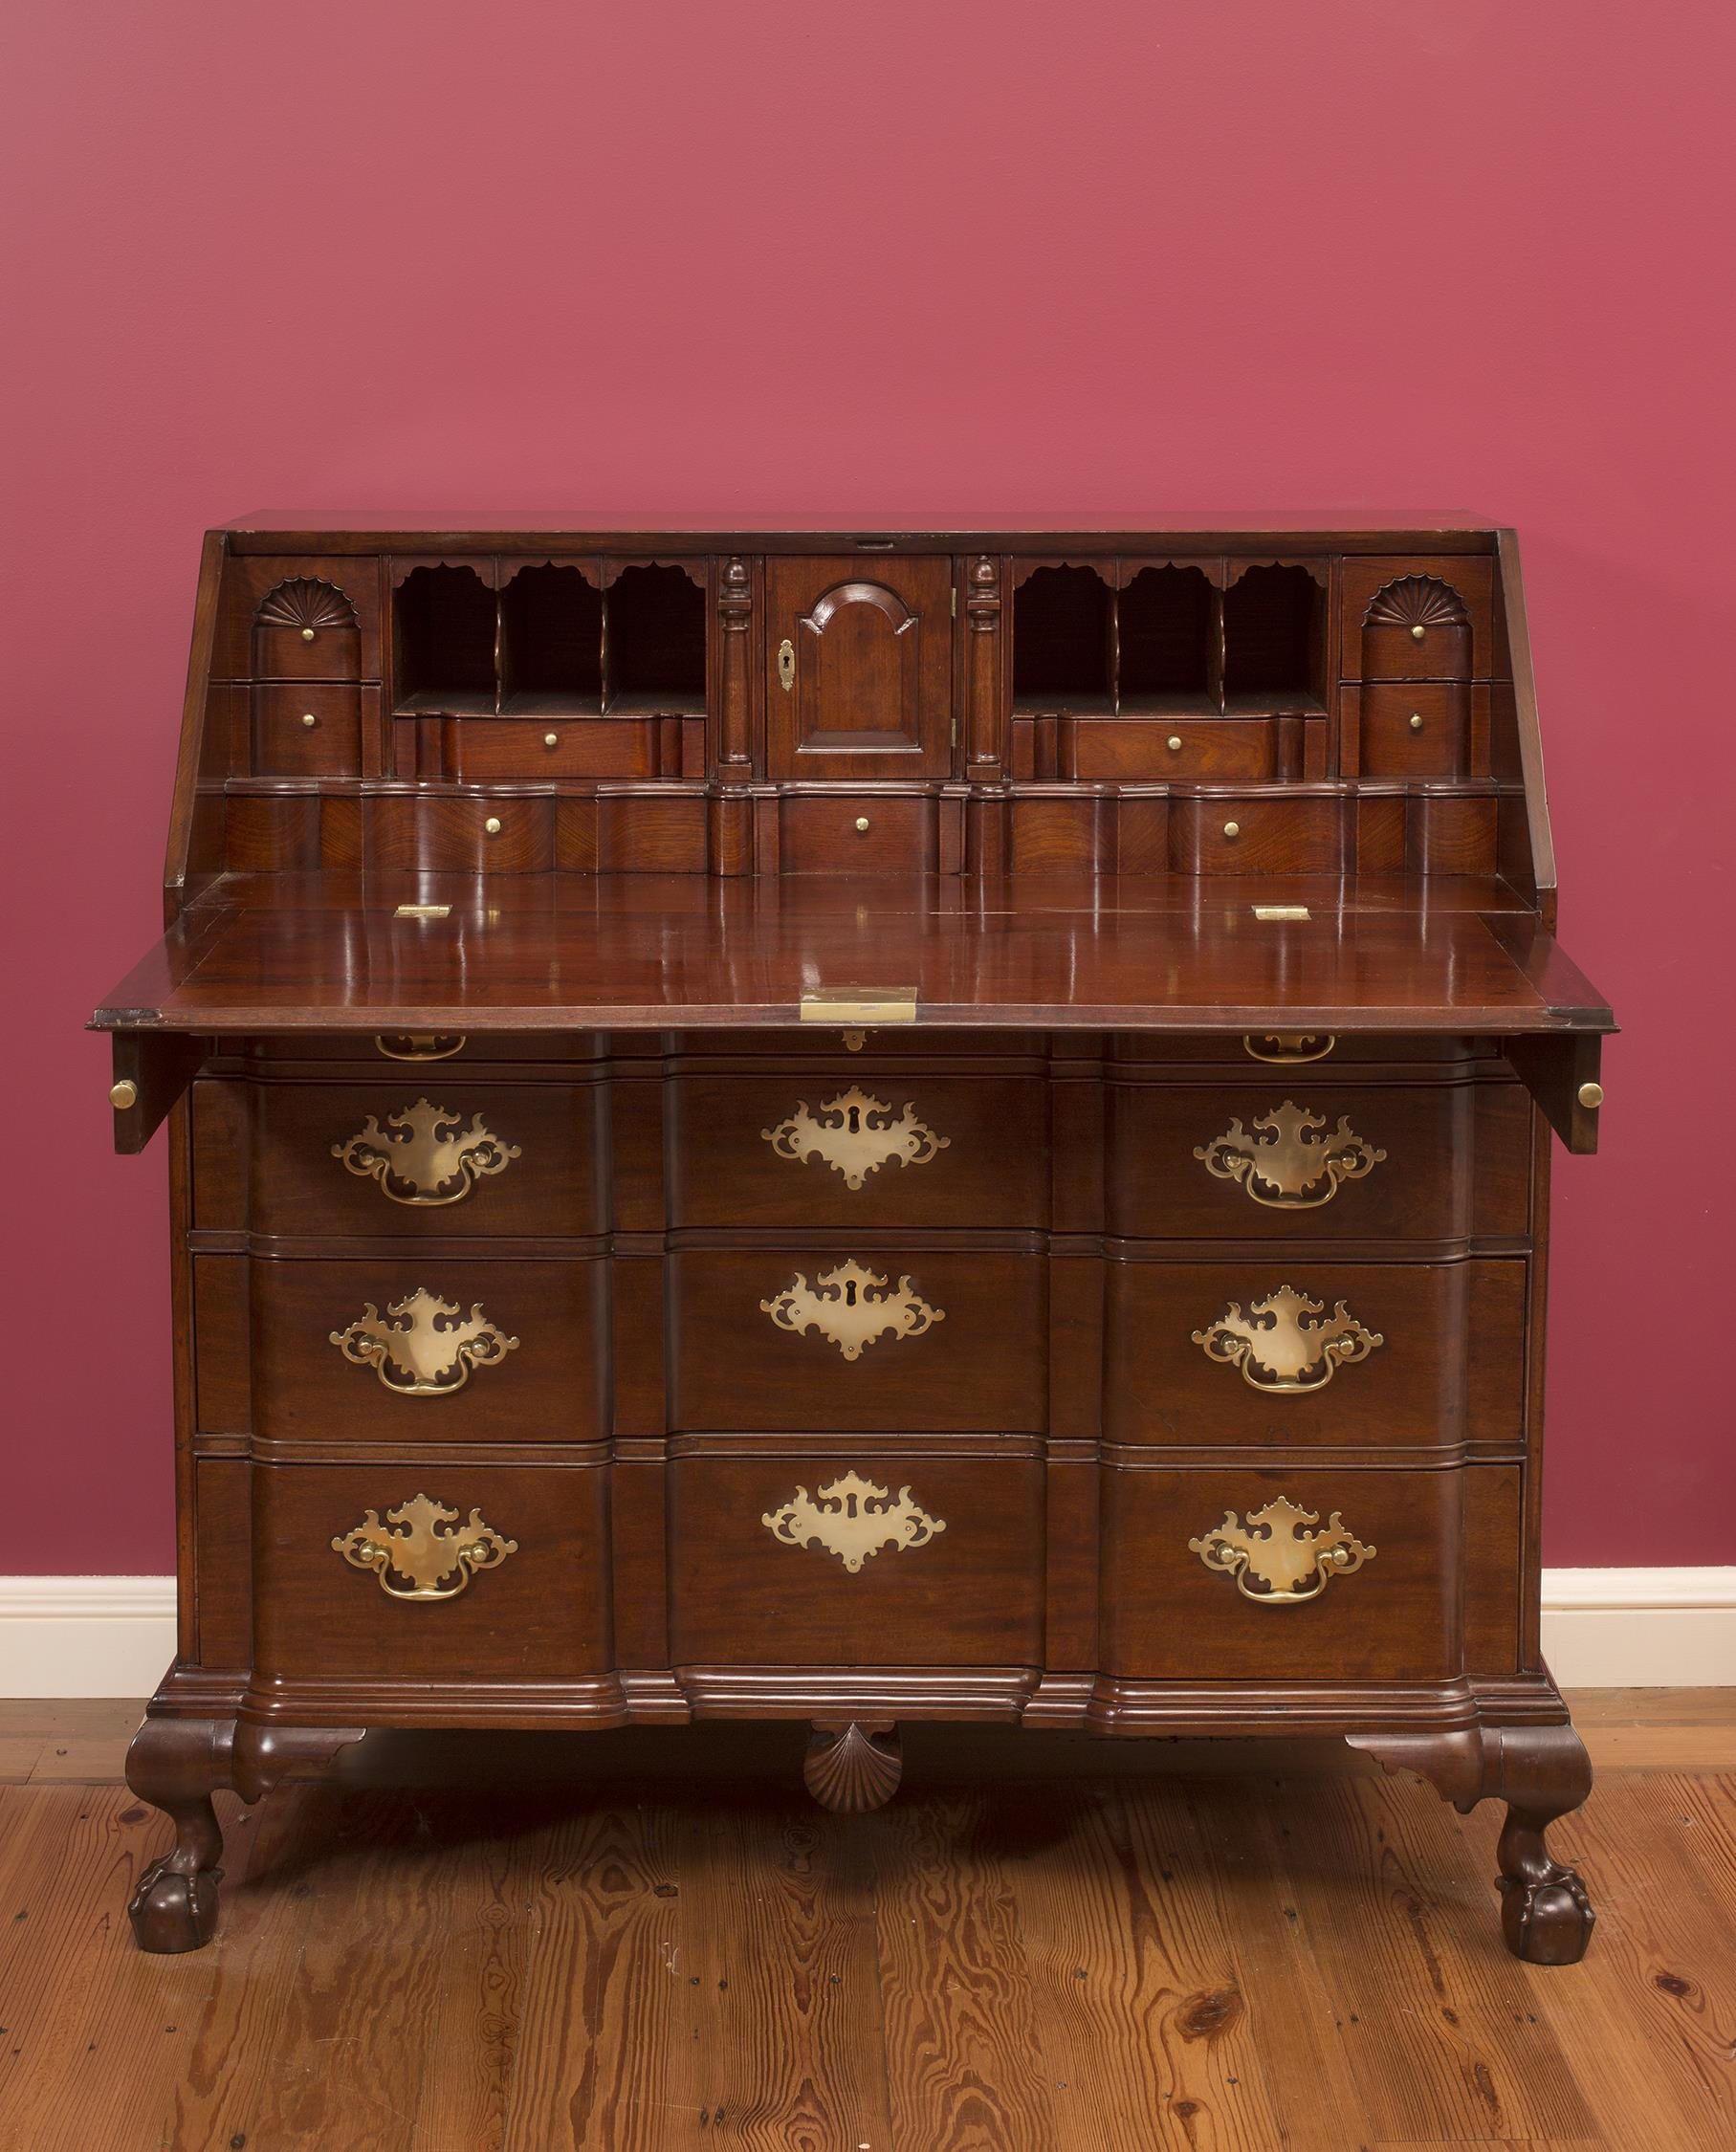 Chippendale Salem Block Front Desk with Blocked Lid